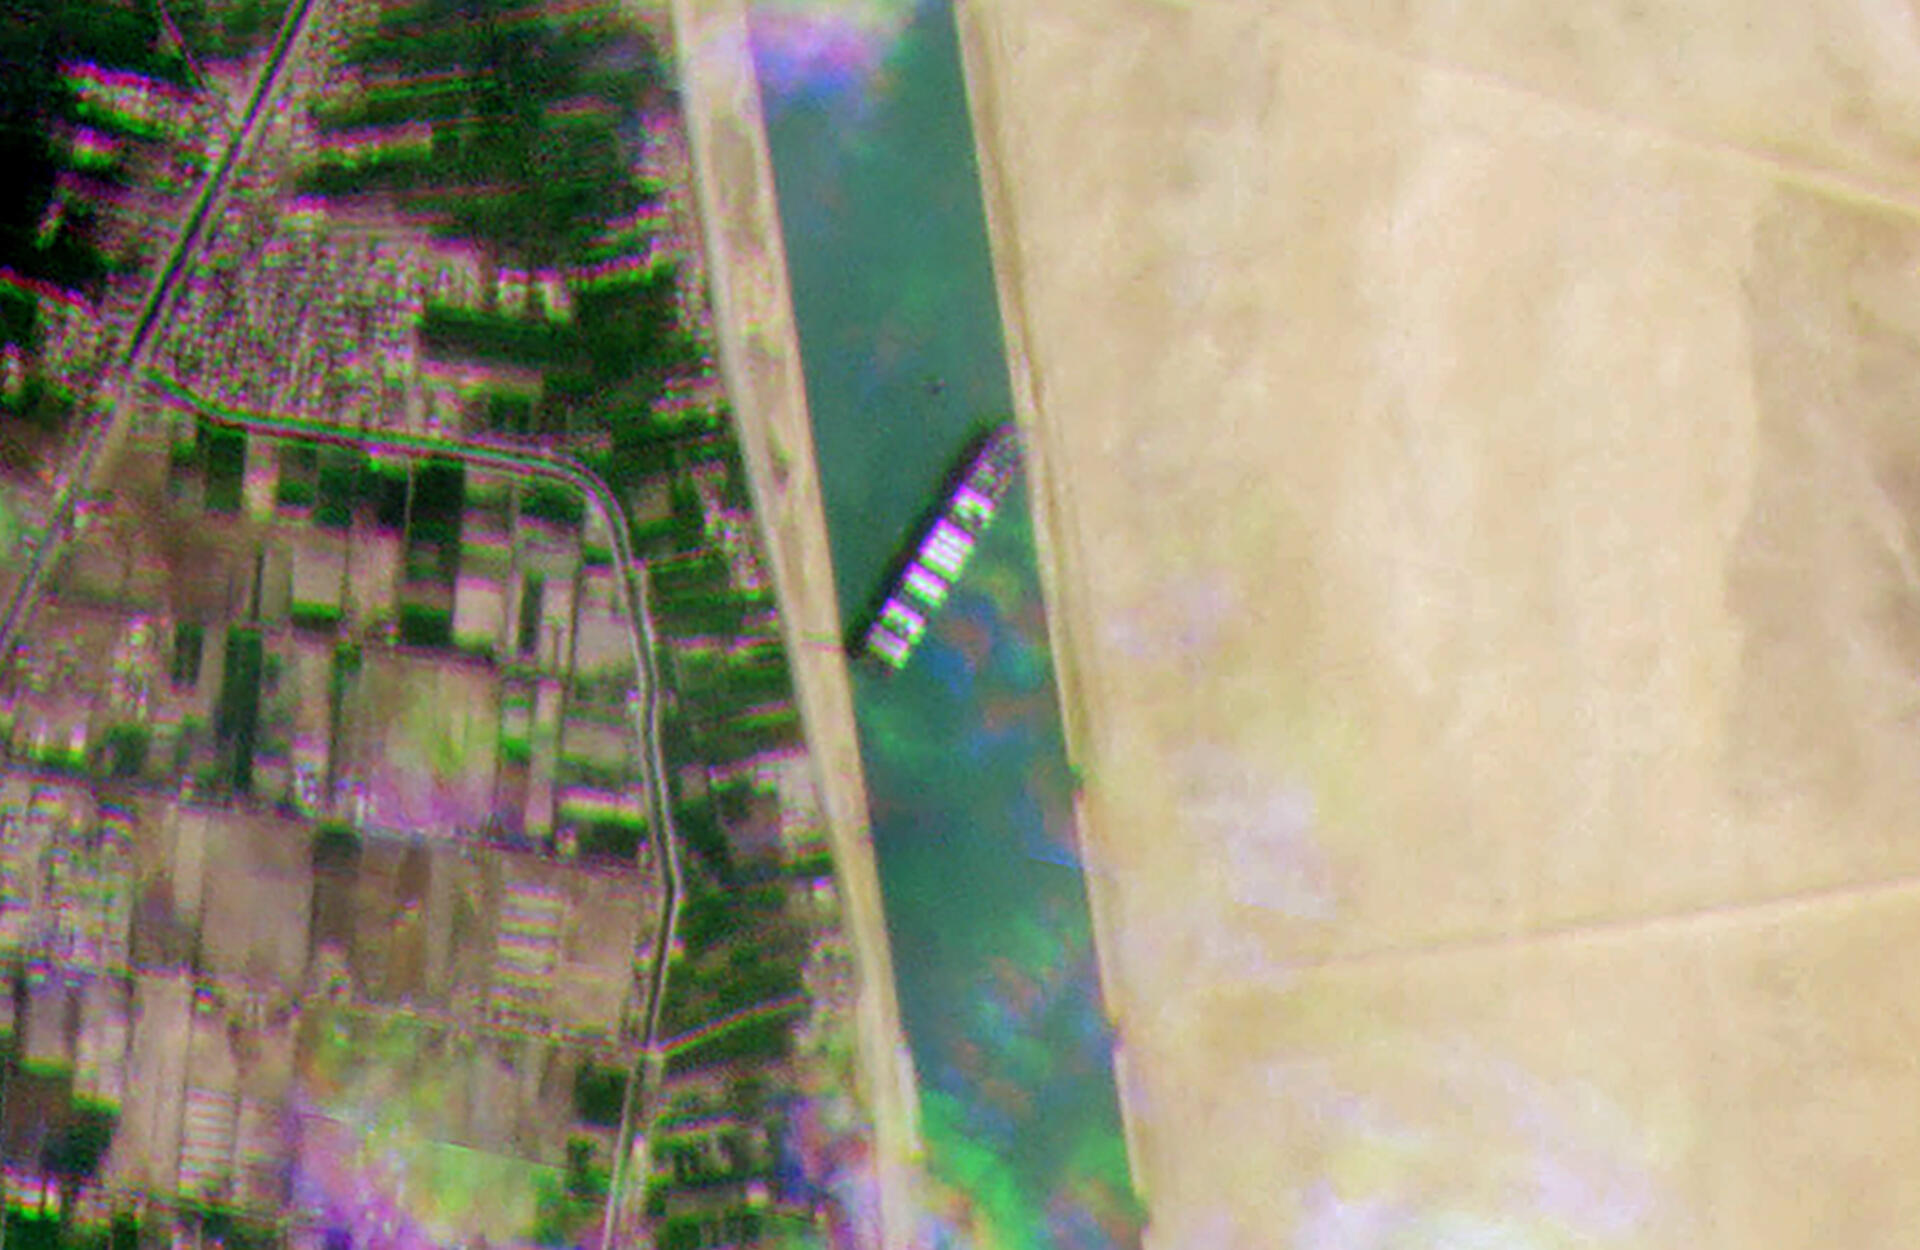 A satellite image released by Planet Labs Inc shows the grounded container ship MV Ever Given blocking all traffic through the main channel of the Suez Canal